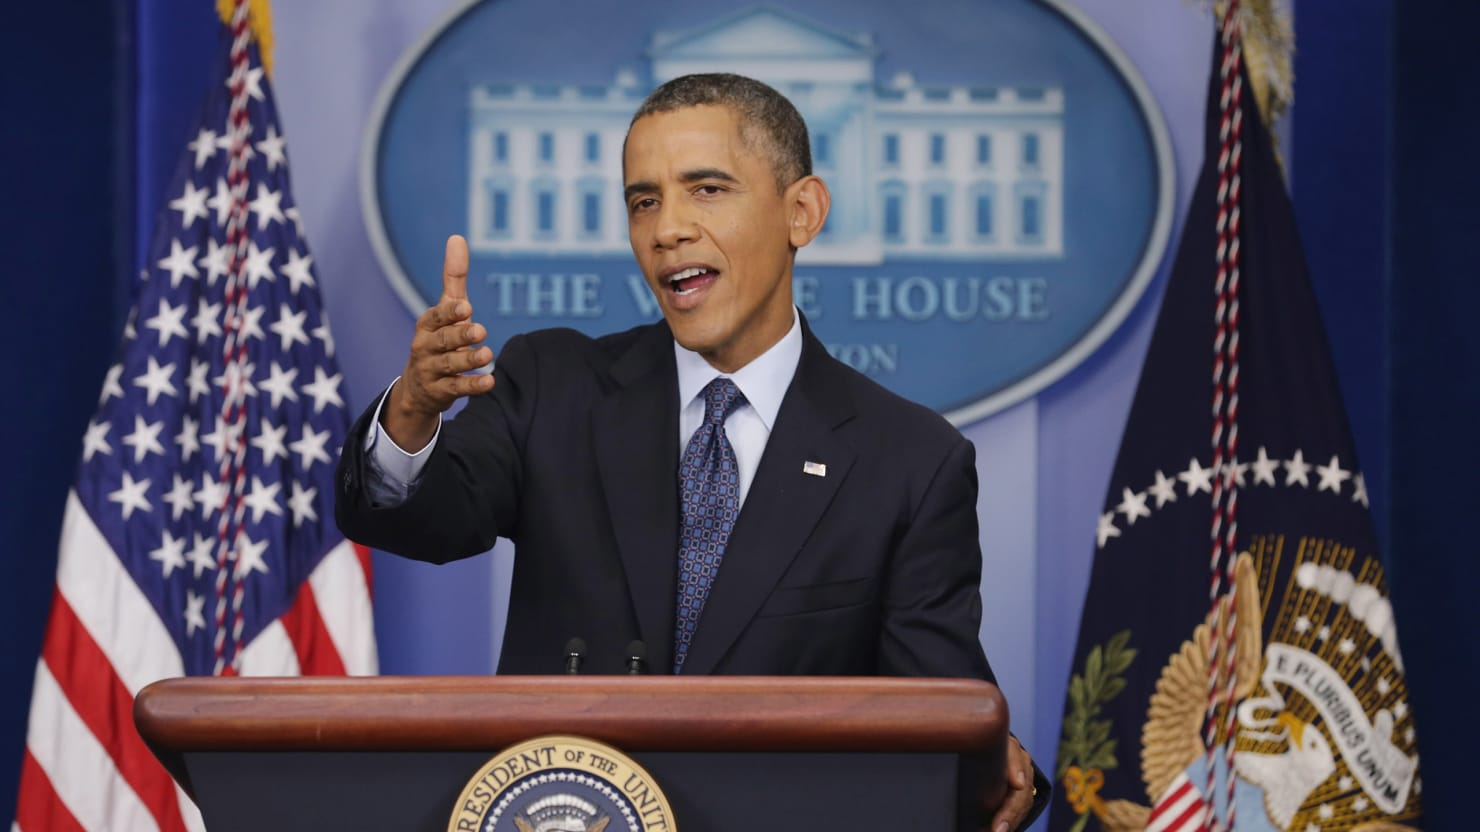 Obama at the Shutdown Press Conference: 'Lord Knows I'm Tired of It'